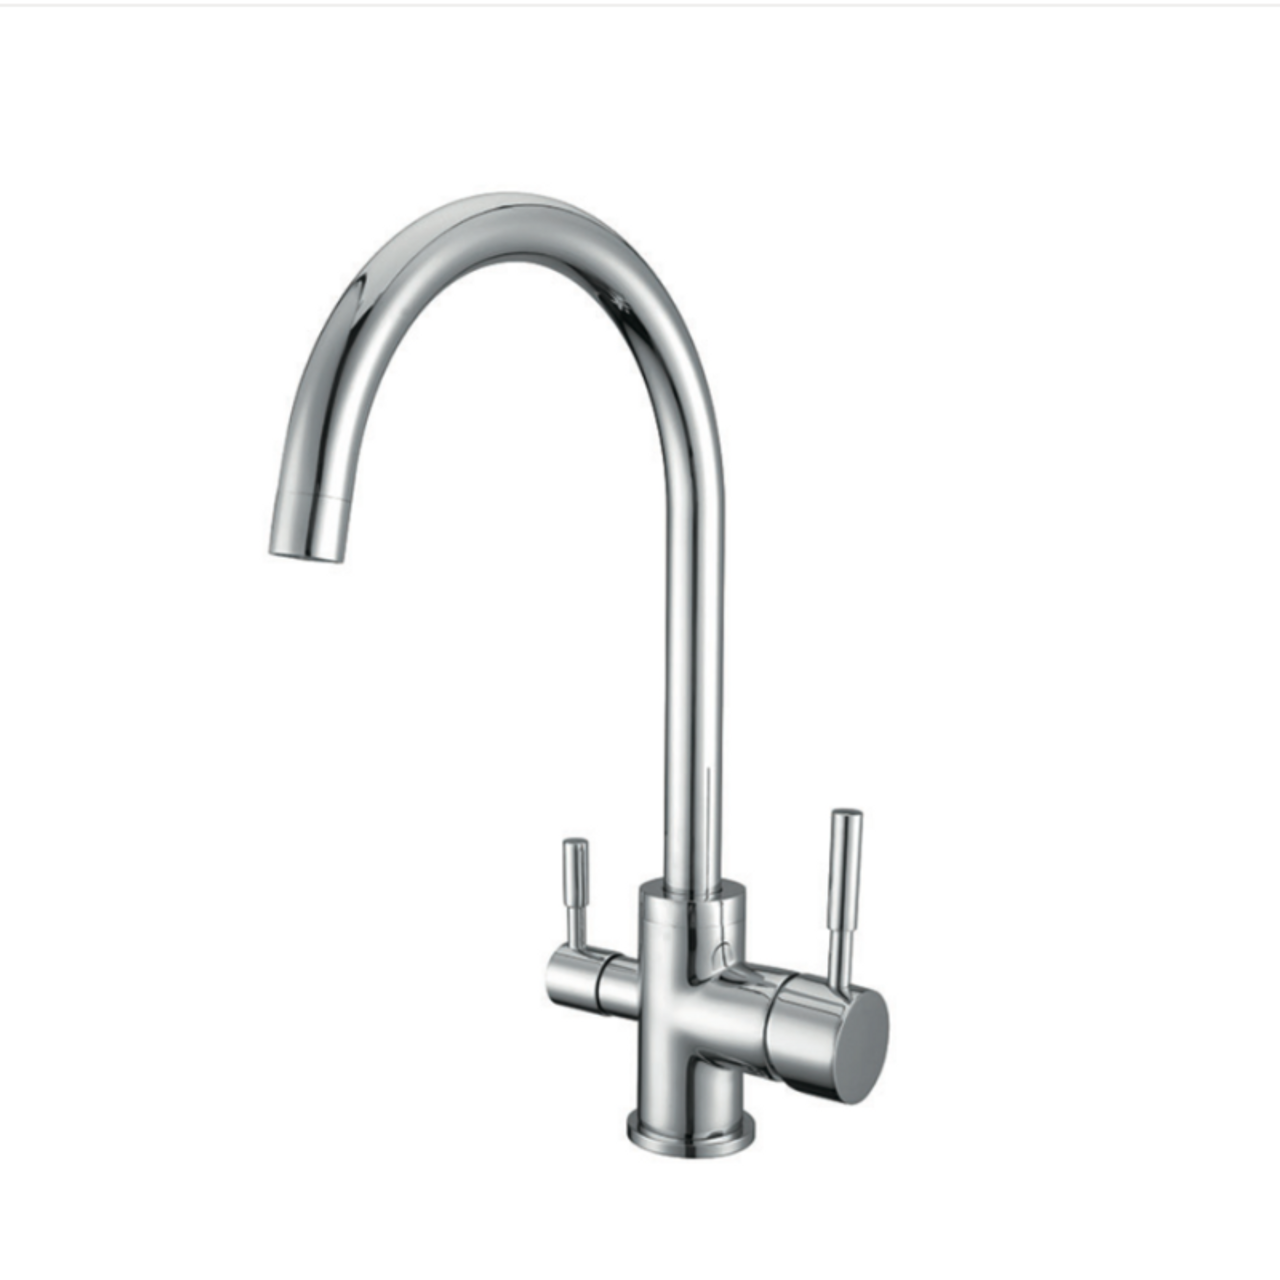 waterlux wl302 round elegant 3 way kitchen faucet for ro system - Reverse Osmosis Faucet